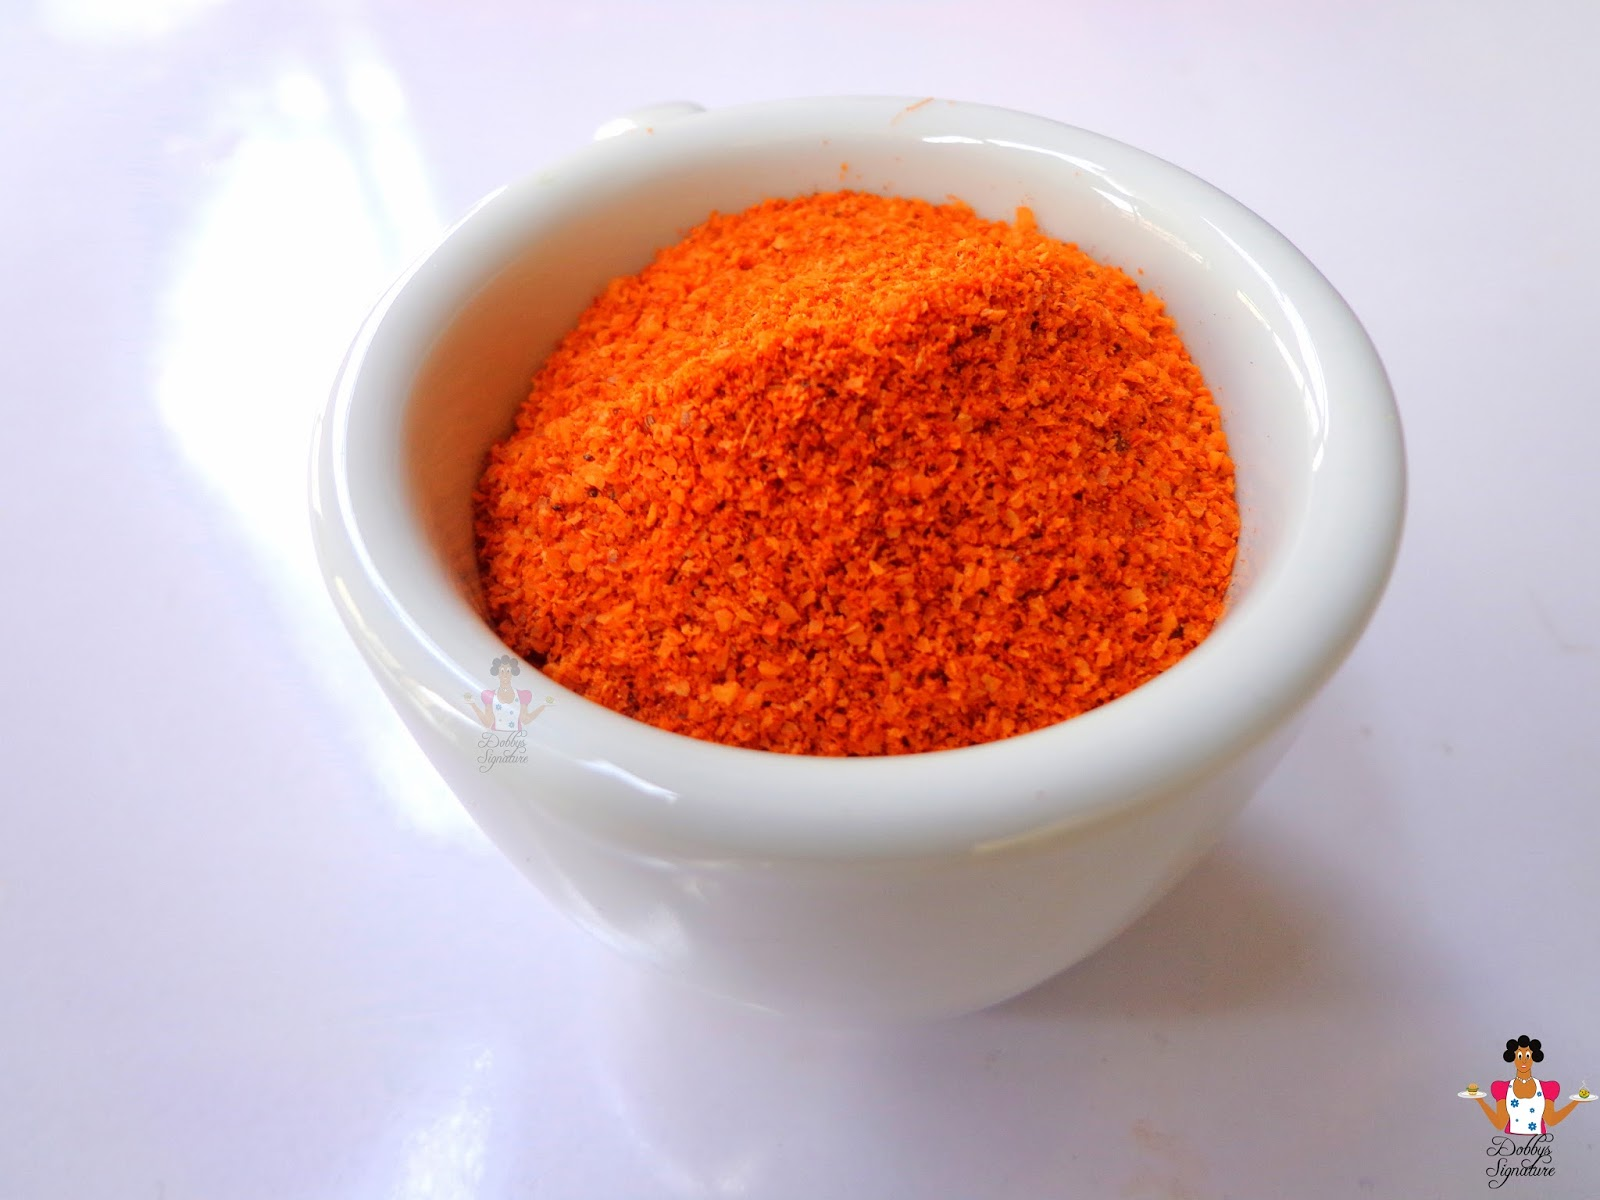 tbsp. chili powder